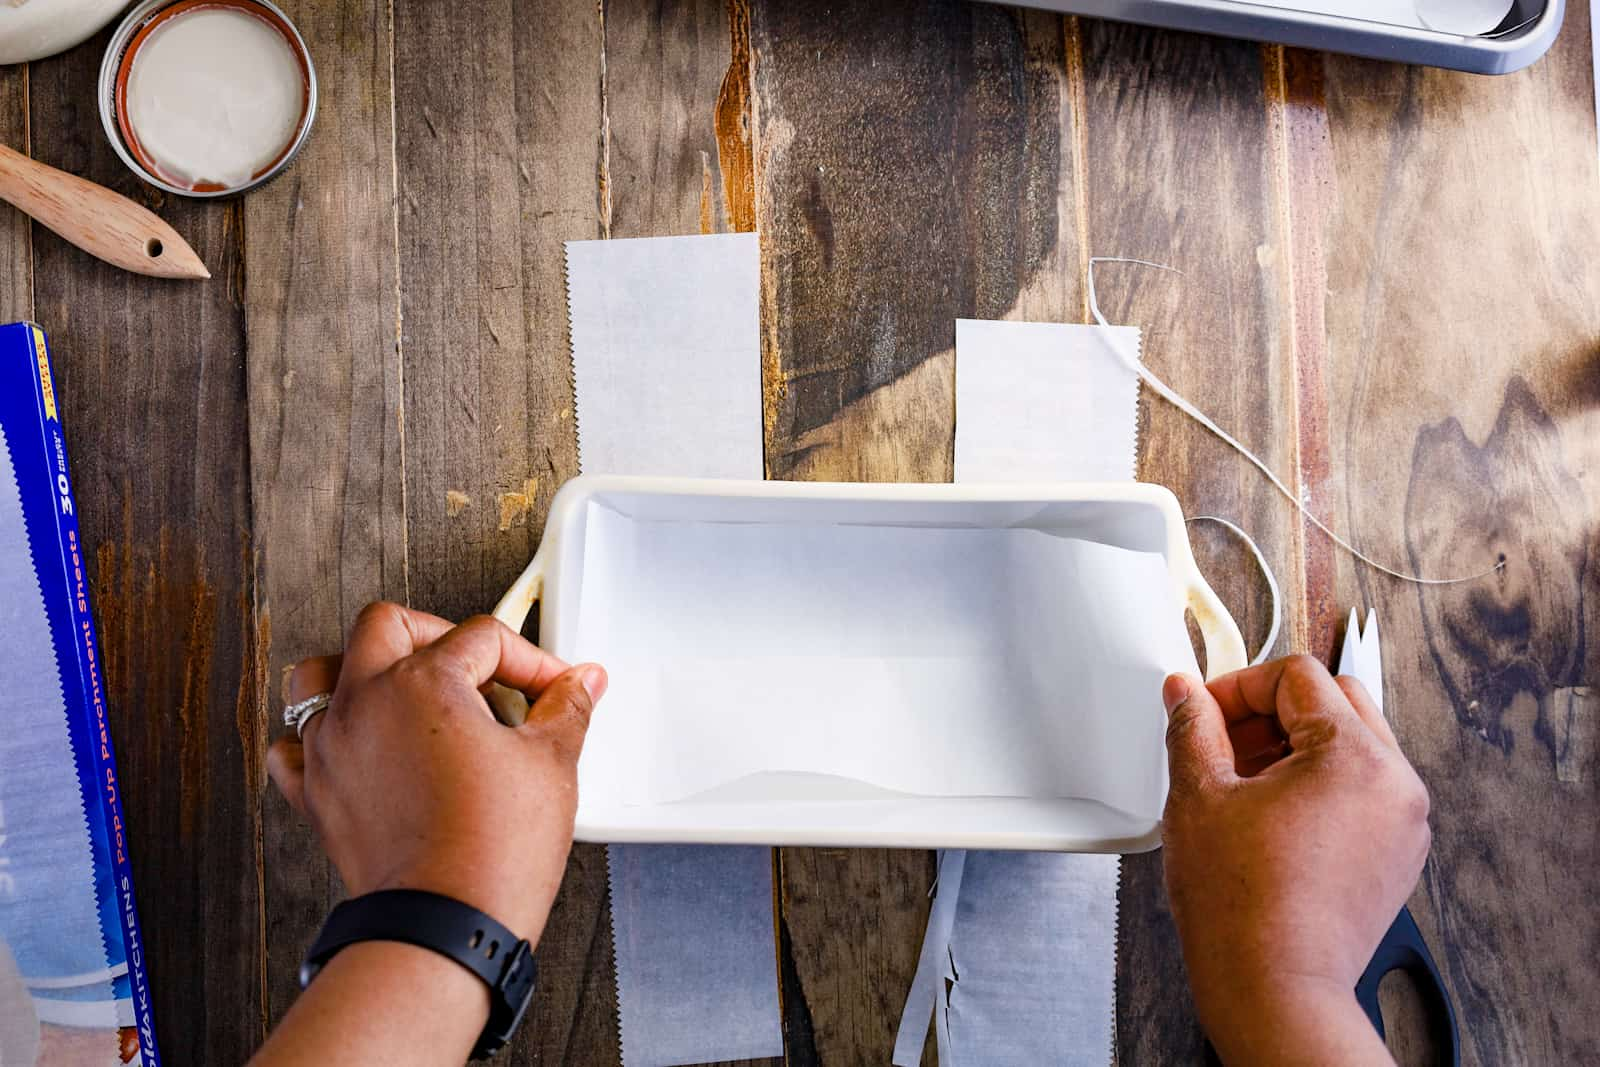 lining a loaf pan with parchment